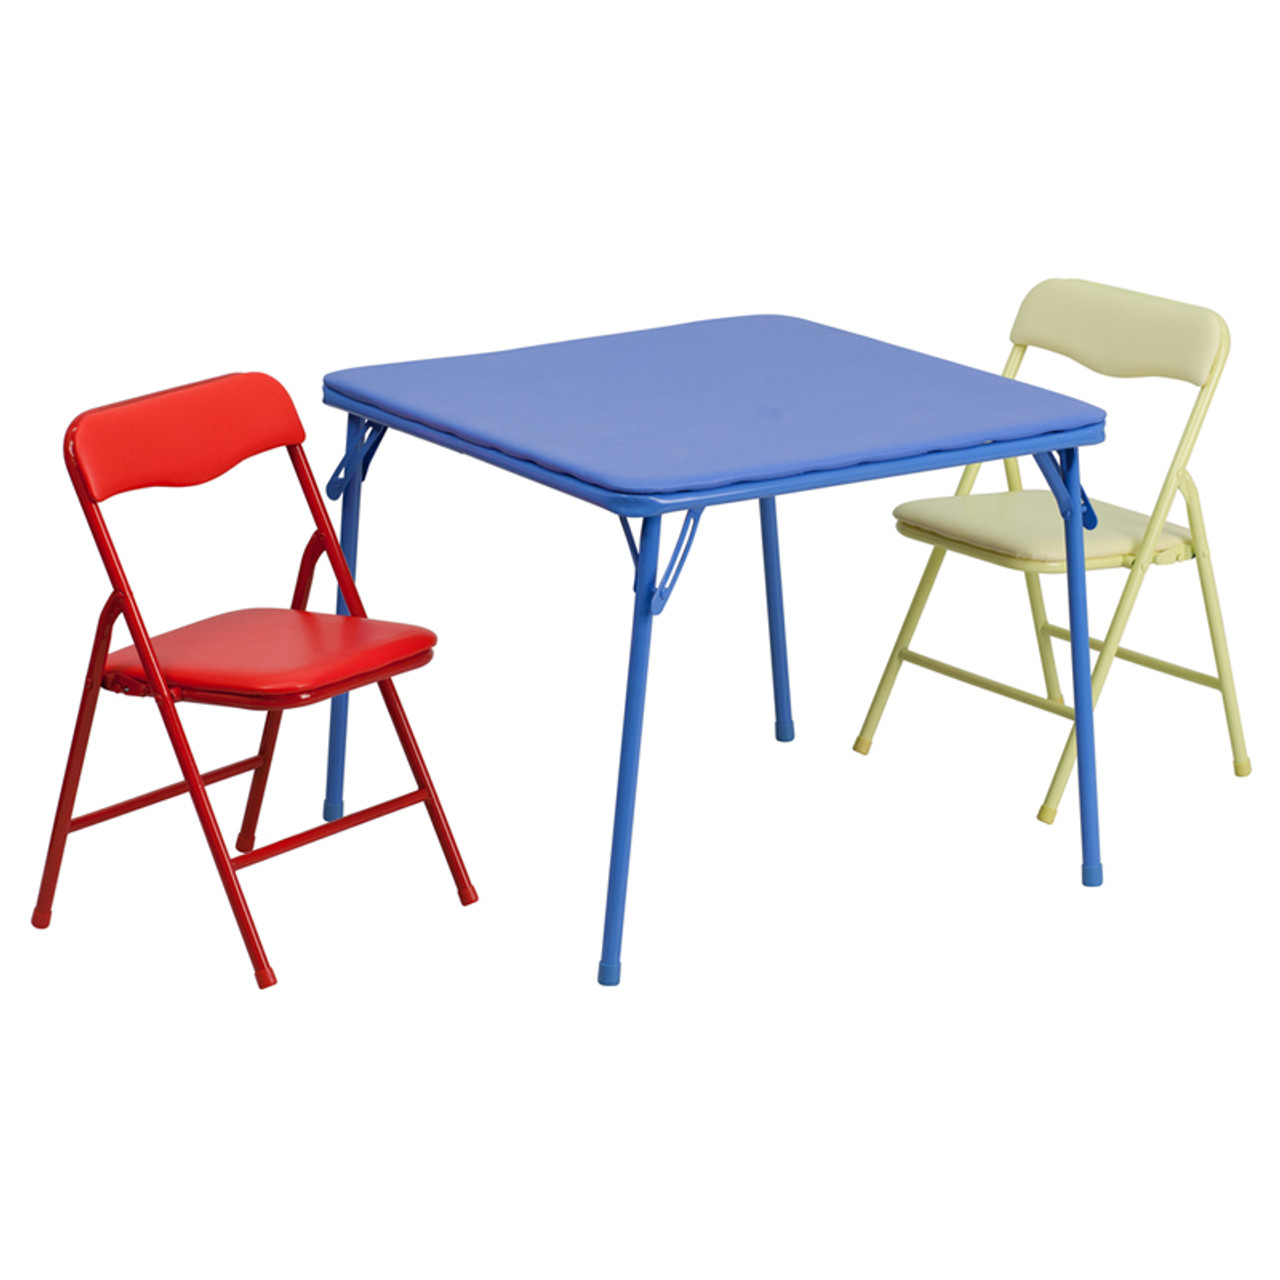 - Kids Colorful 3 Piece Folding Table And Chair Set